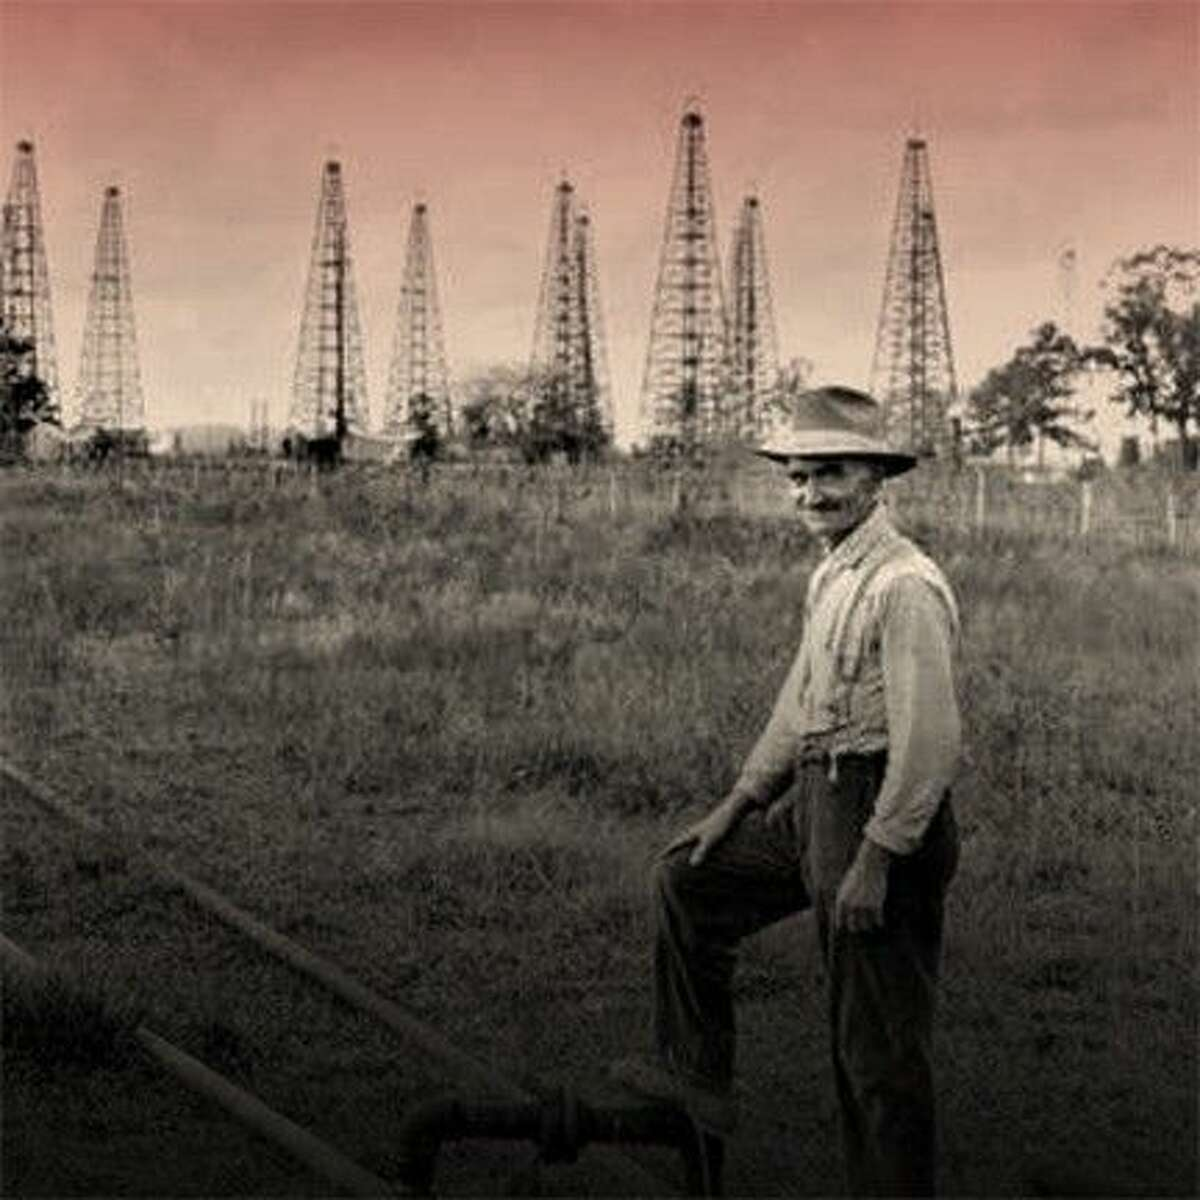 Back cover photo from Texas Boomtowns: A History of Blood and Oil, by Bartee Haile